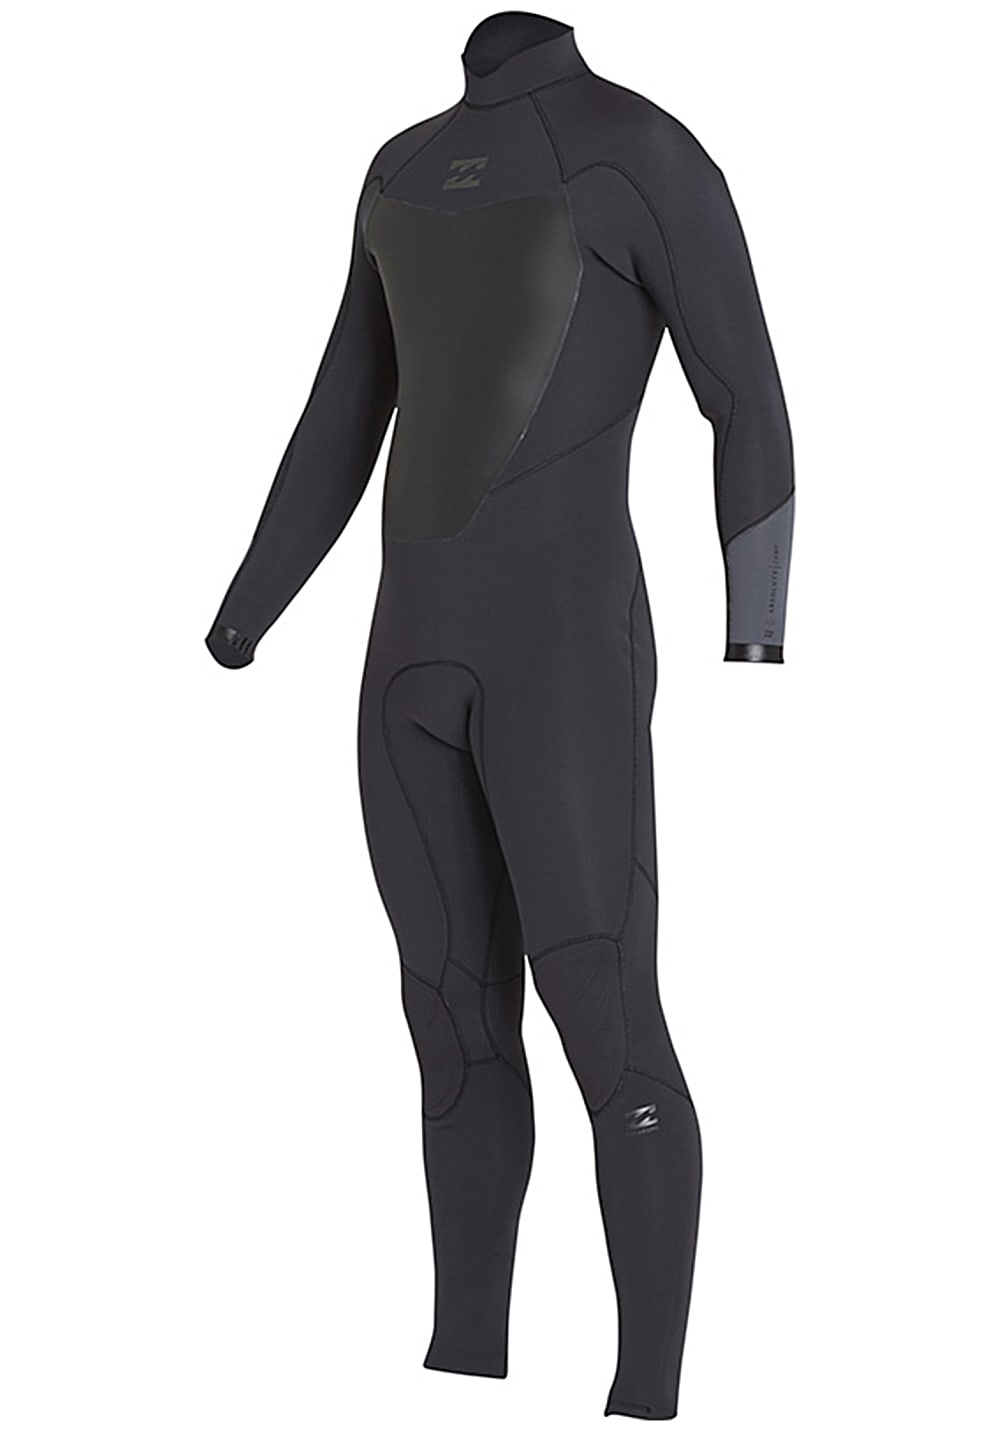 Billabong ABSolute Comp 3/2mm Back Zip FLT - Neoprenanzug für Herren Schwarz